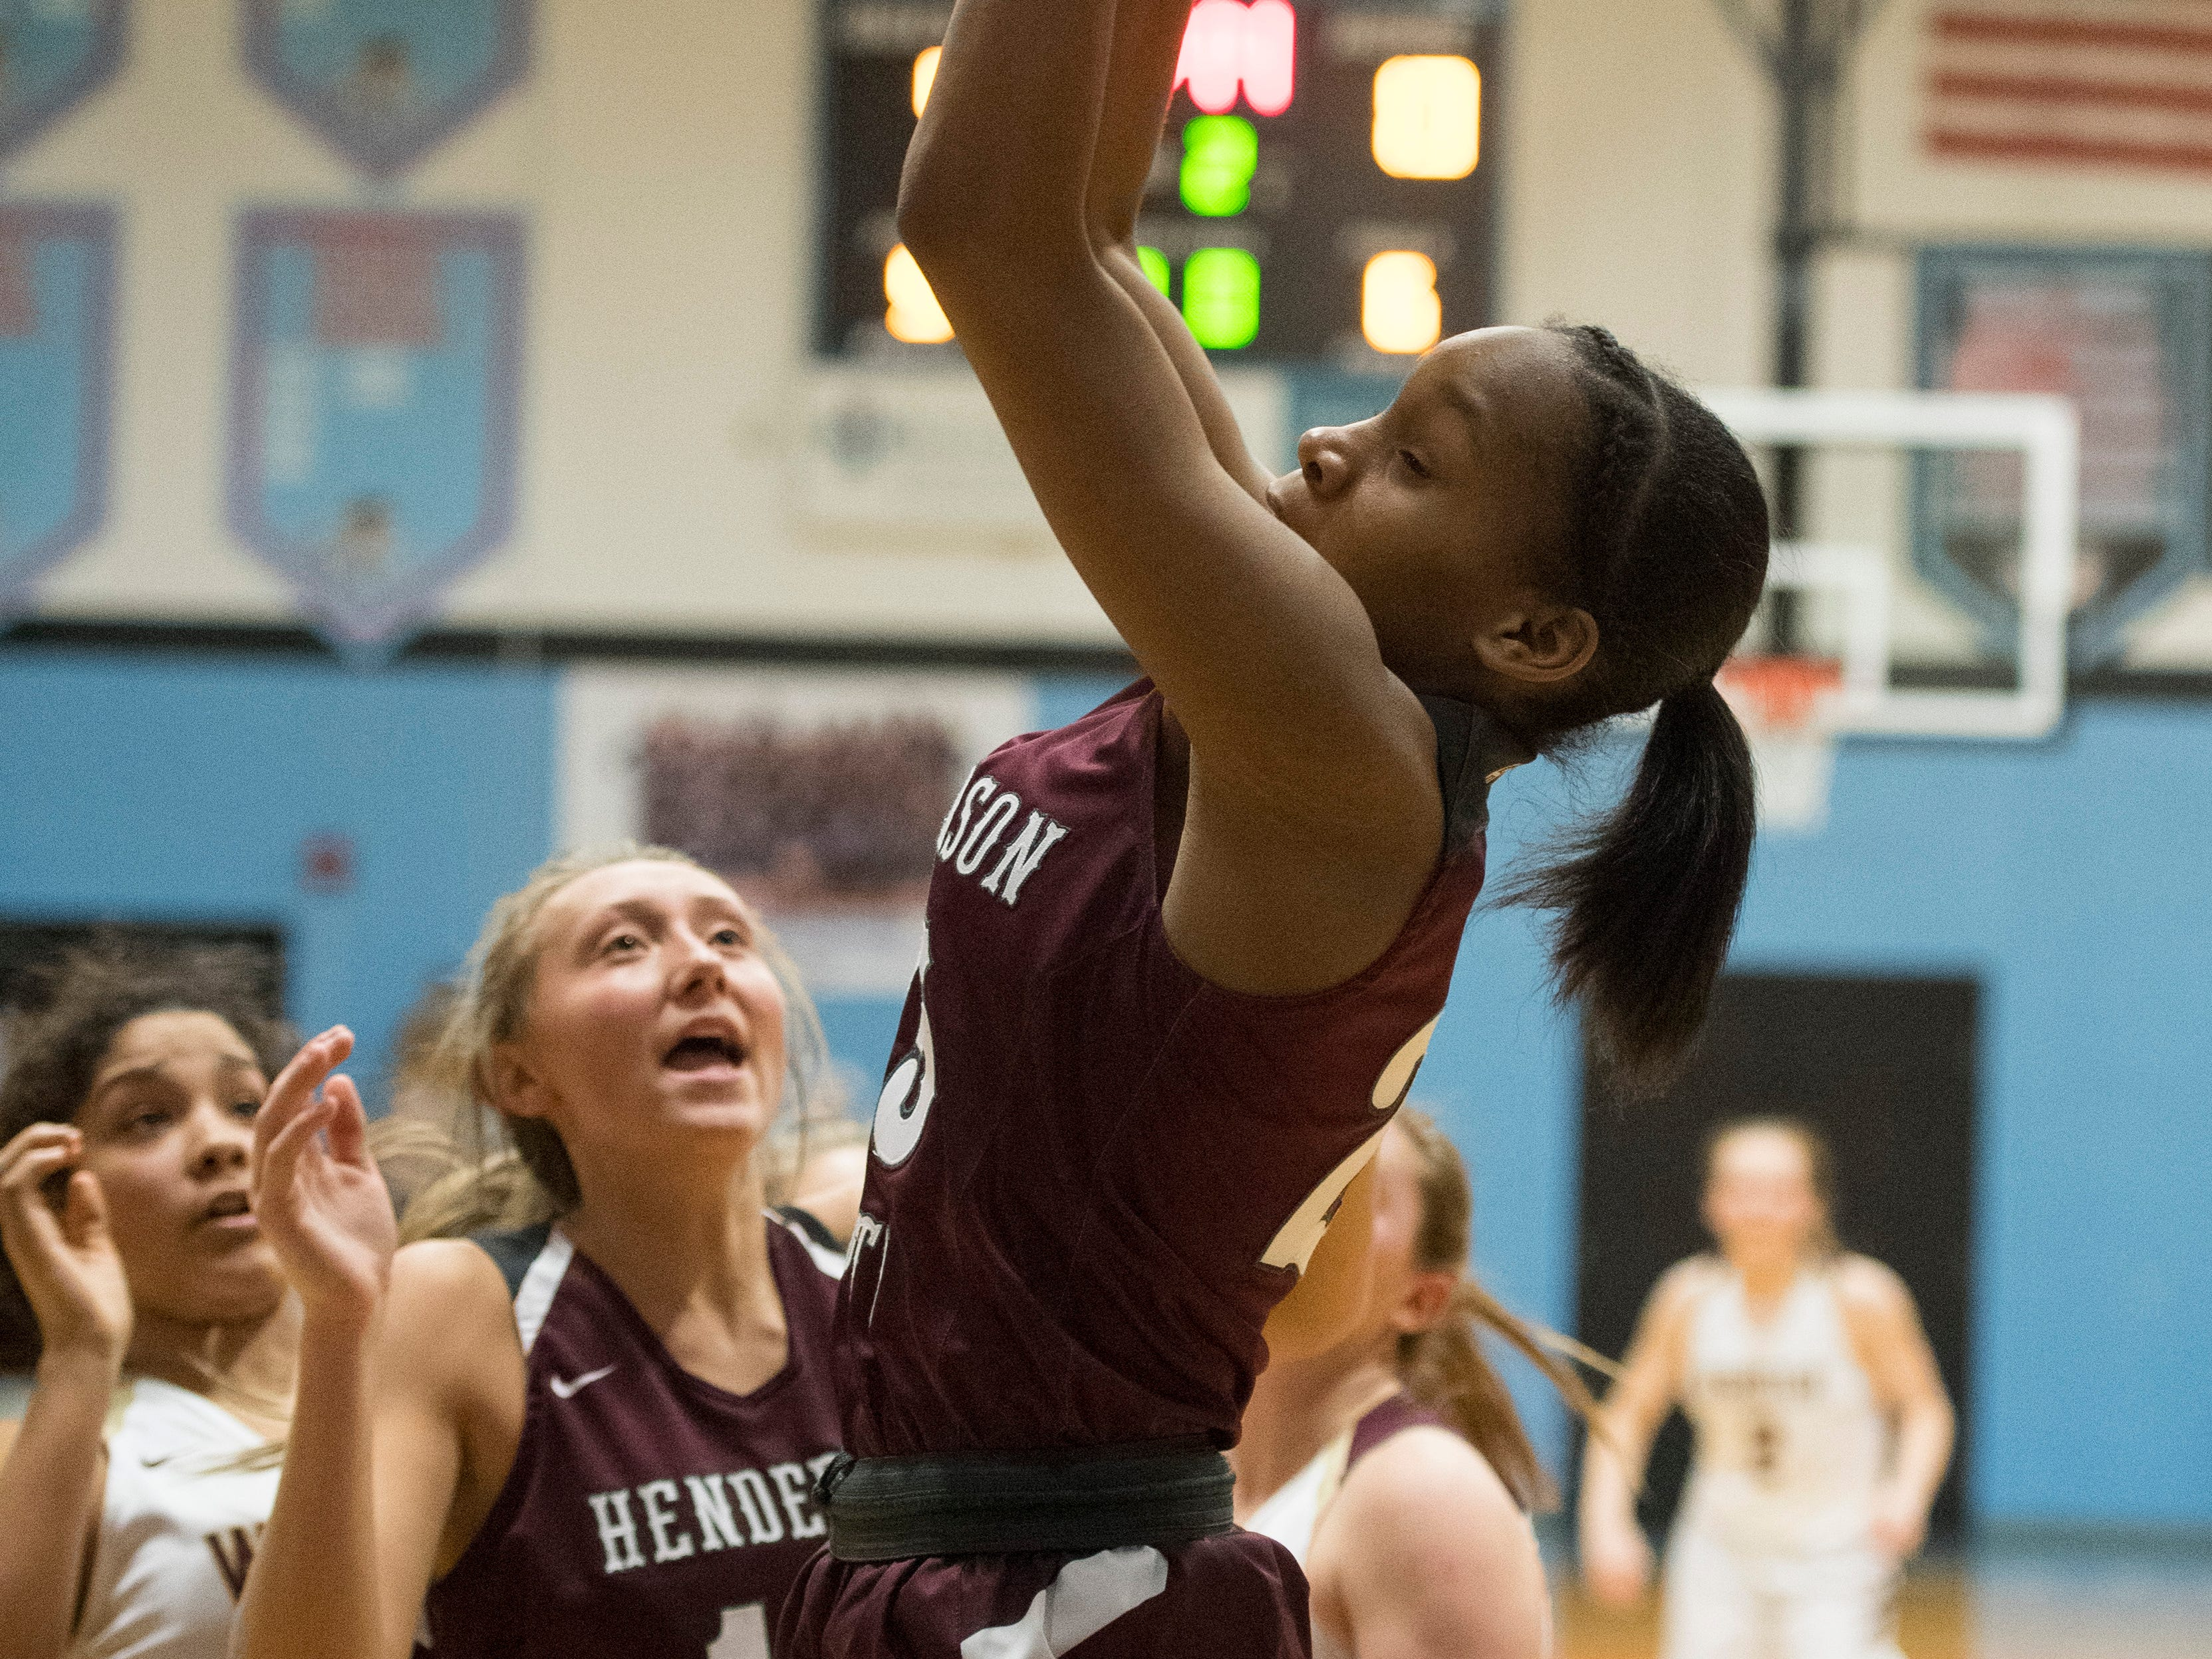 Henderson County's Jarie Thomas (3) pulls down a rebound during the 2019 Sixth District championship game against the Webster County Lady Trojans at Union County High School Thursday, Feb. 21, 2019.